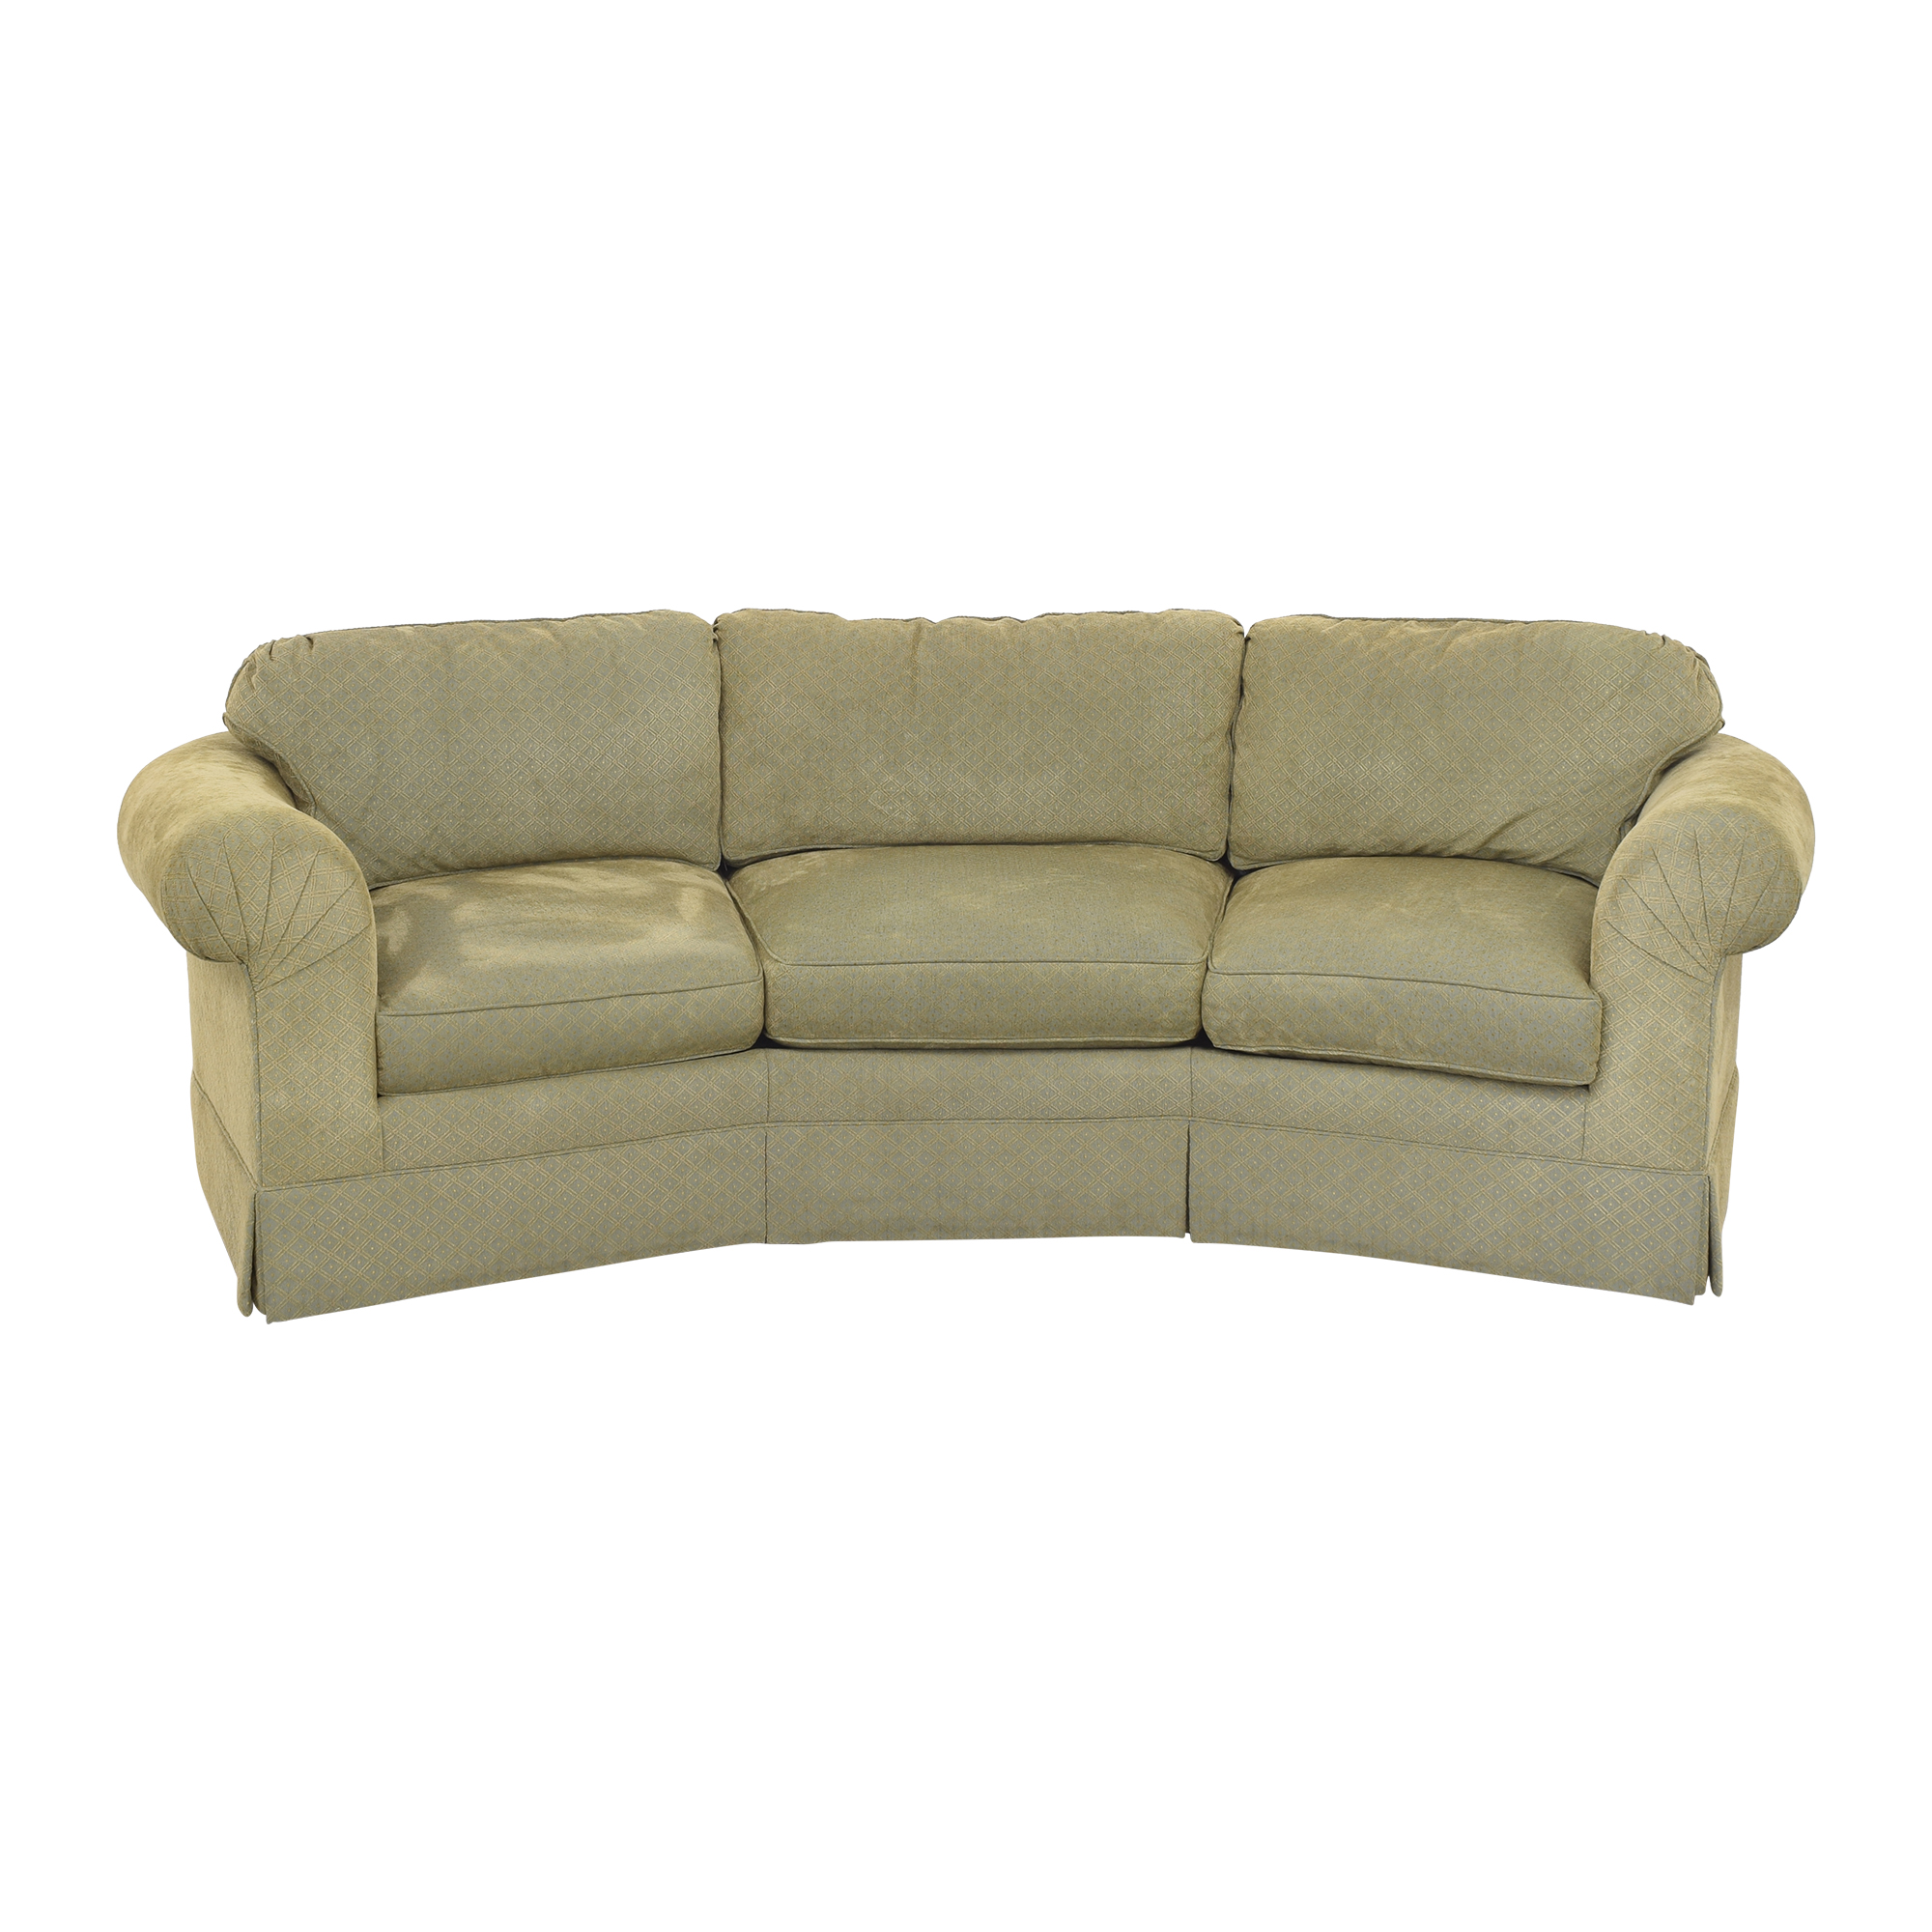 Sherrill Furniture Sherrill Roll Arm Conversation Sofa coupon